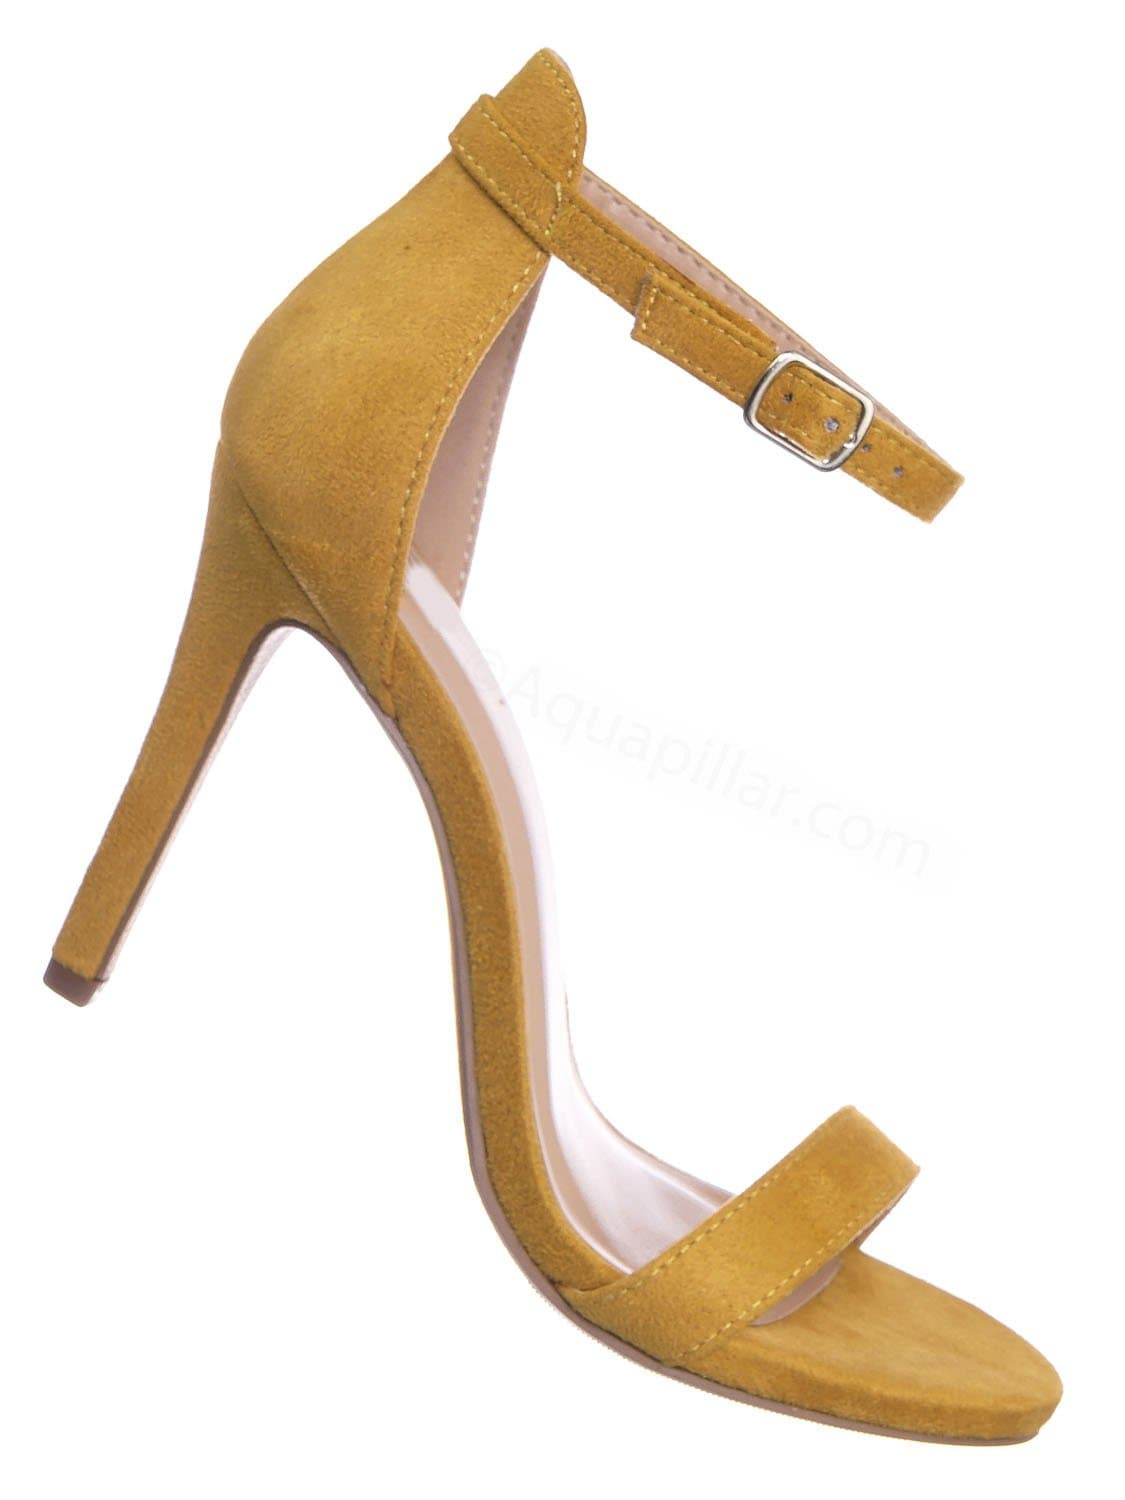 Tyrell MusIsu Classic Womens Open Toe High Heel Dress Sandal w Adjustable Ankle Strap